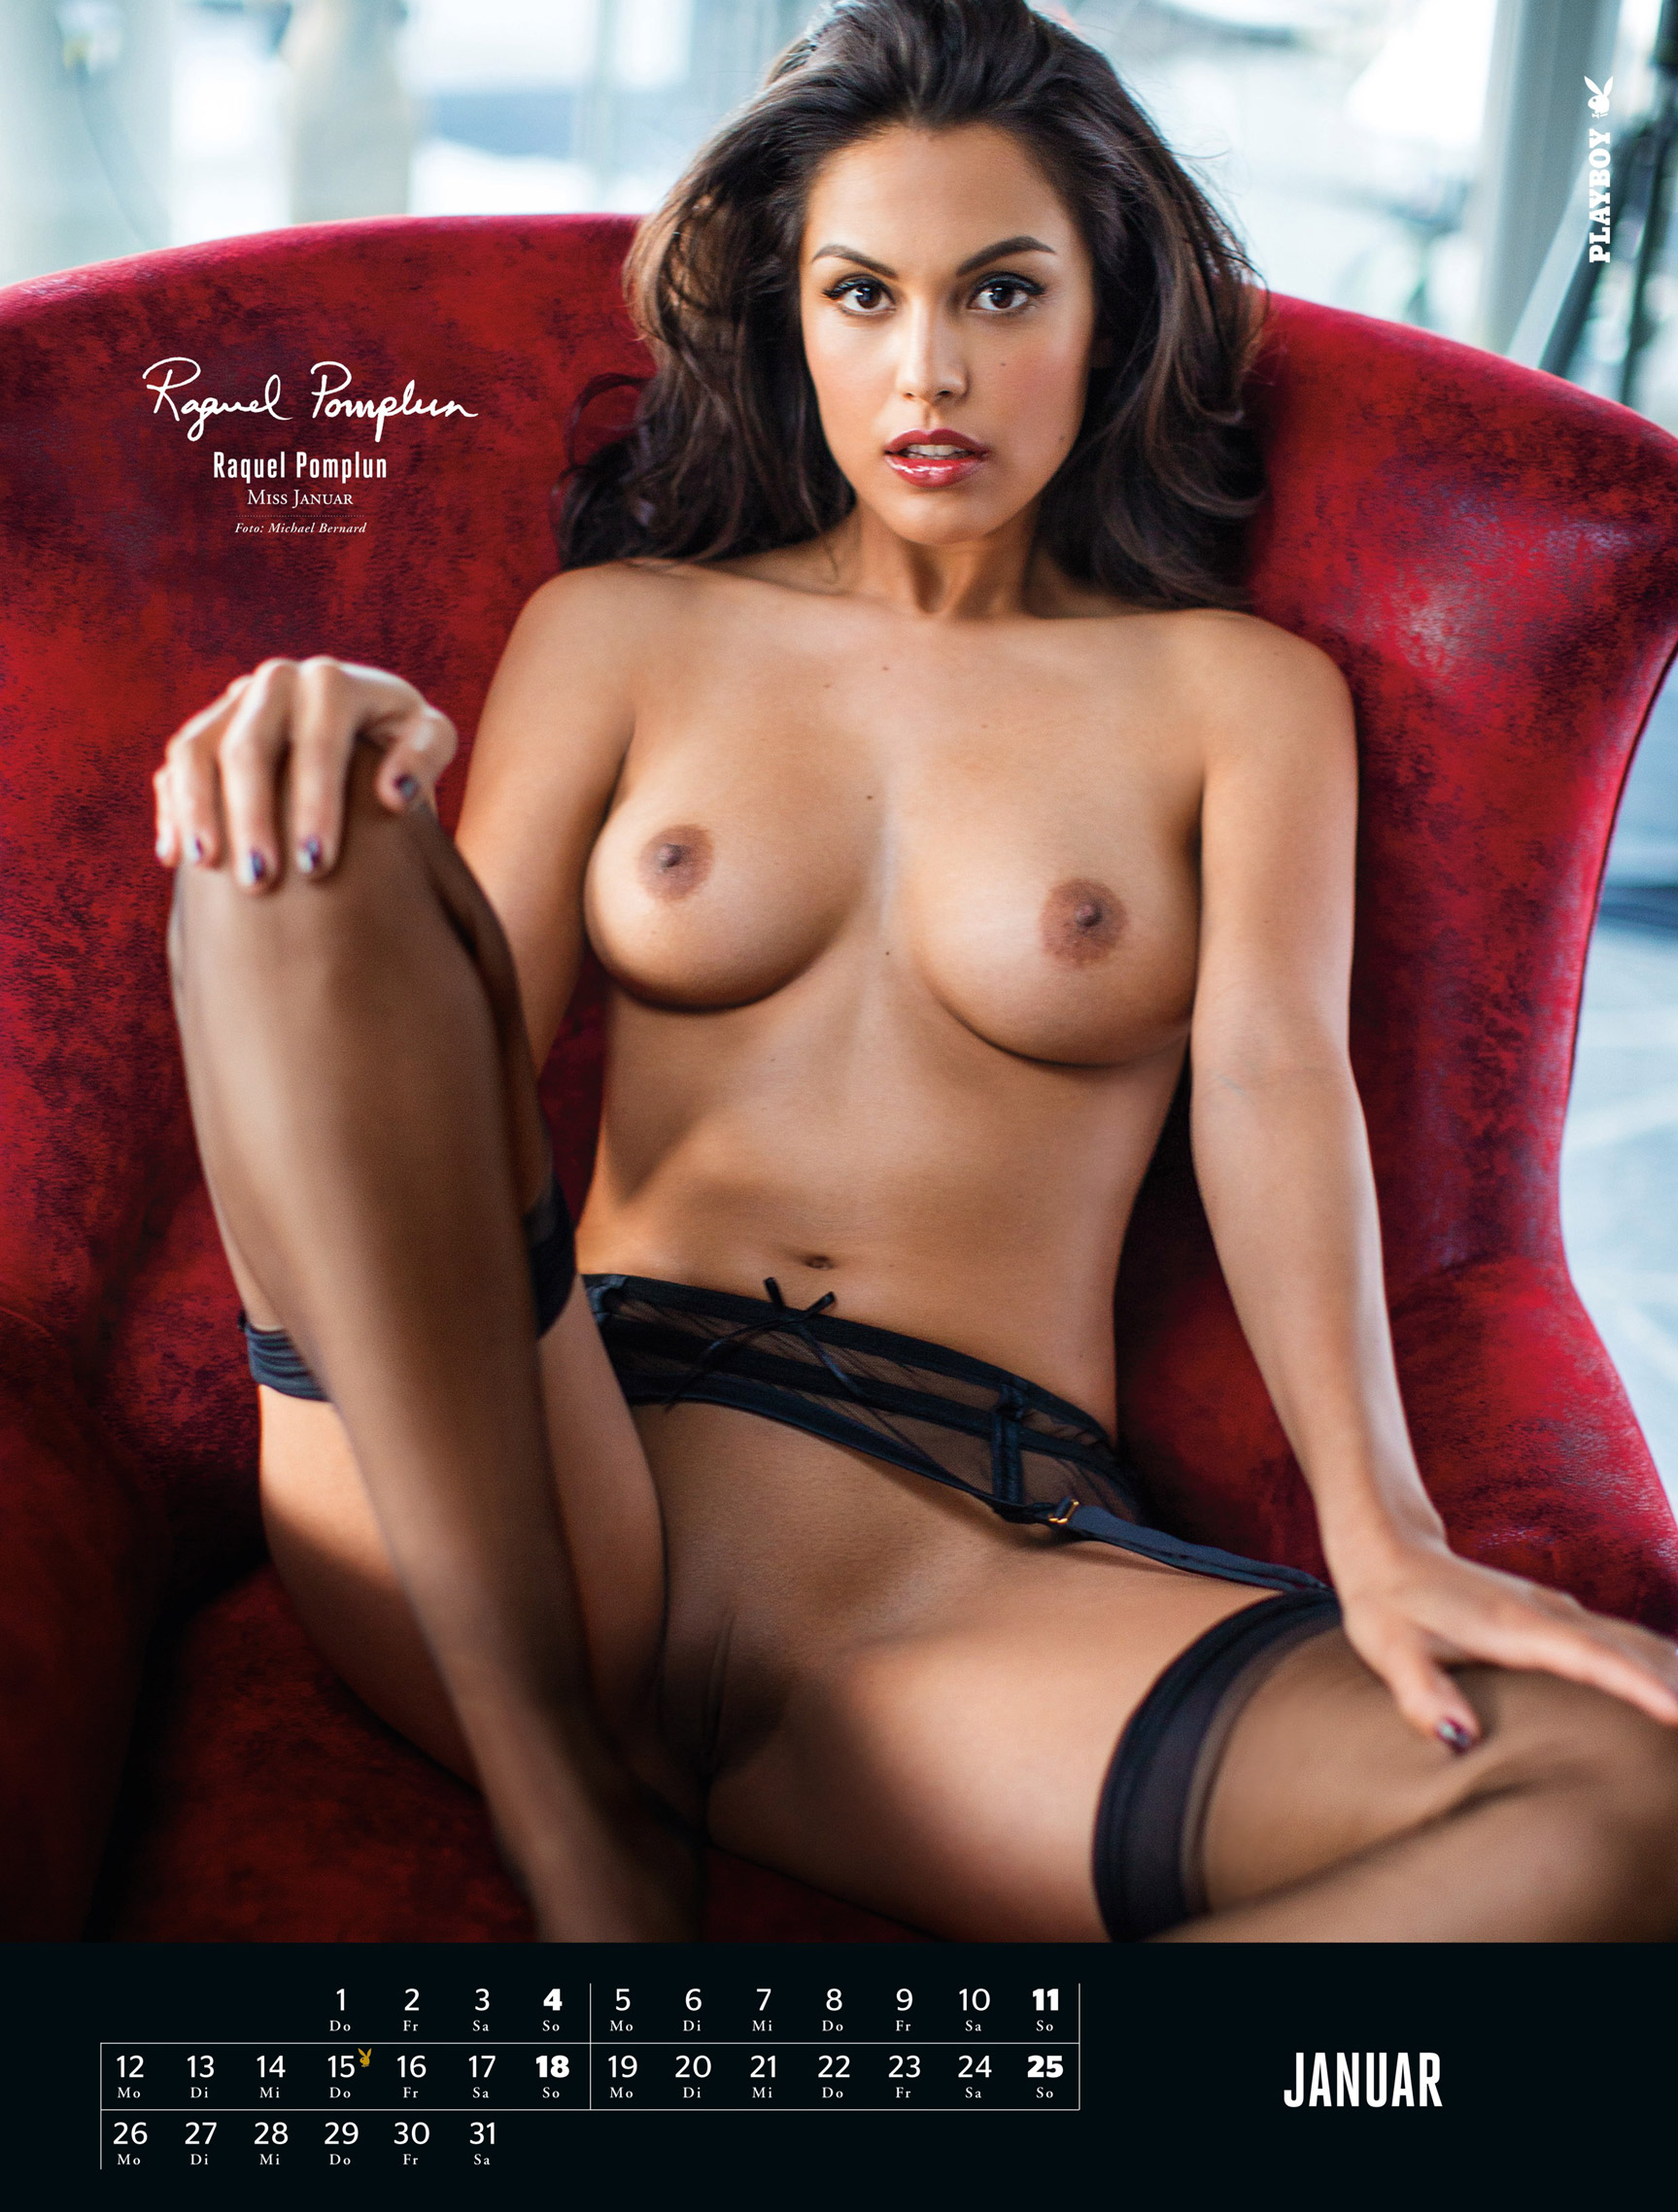 ����������� ��������� Playboy Germany Playmate Calendar 2015 - Miss January 2014 Raquel Pomplun